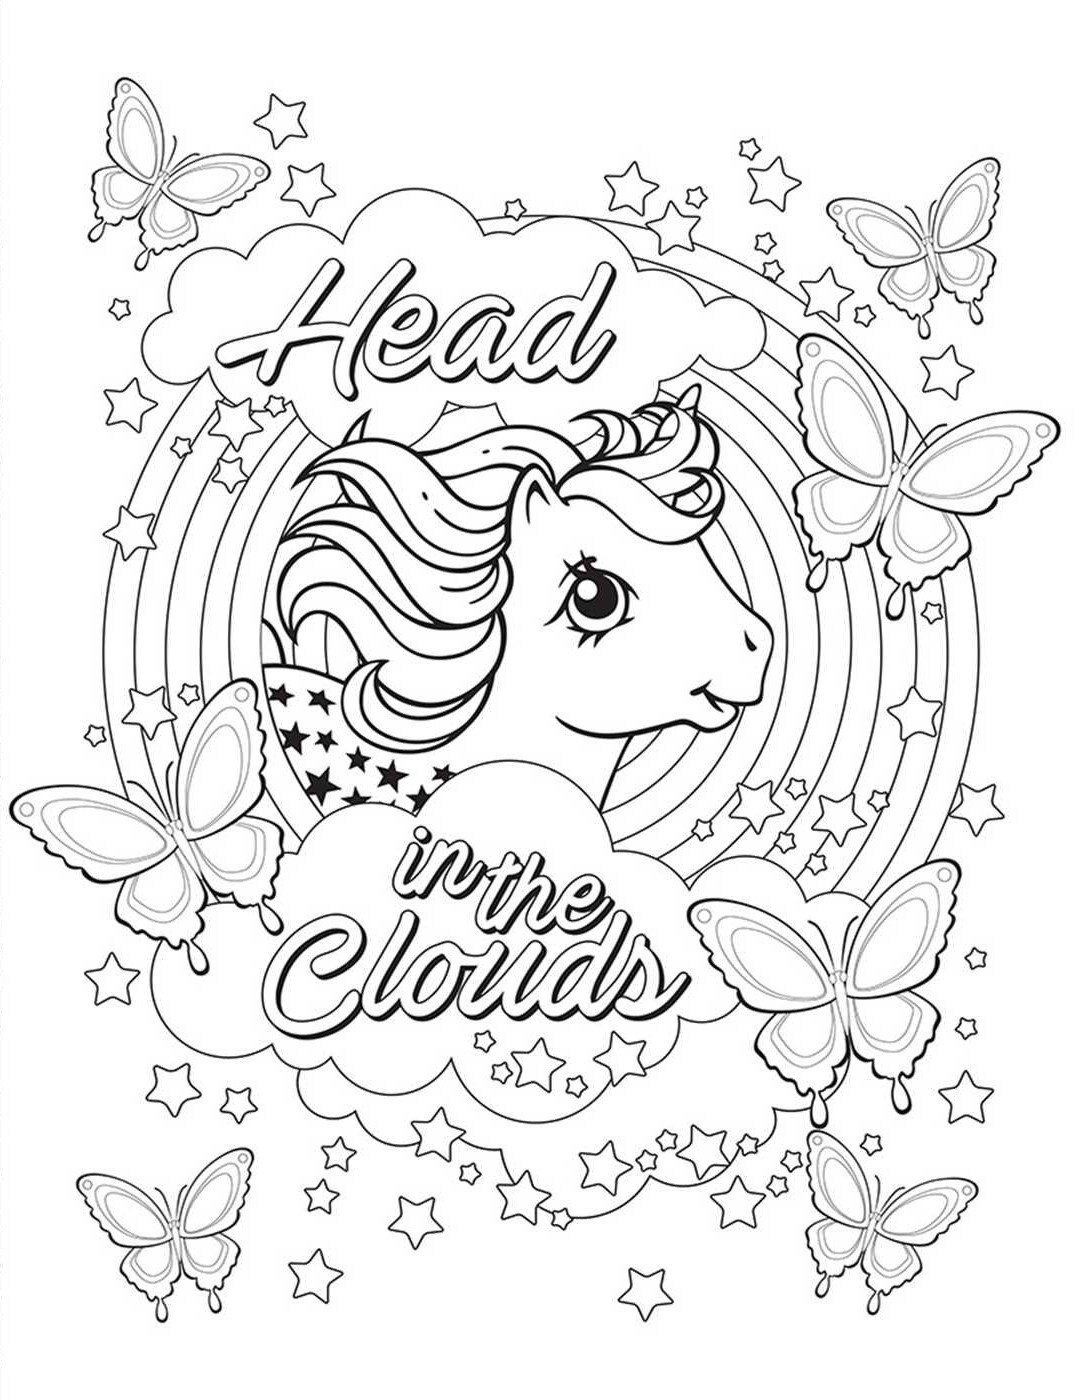 mlp coloring book my little pony coloring pages for girls print for free or mlp book coloring